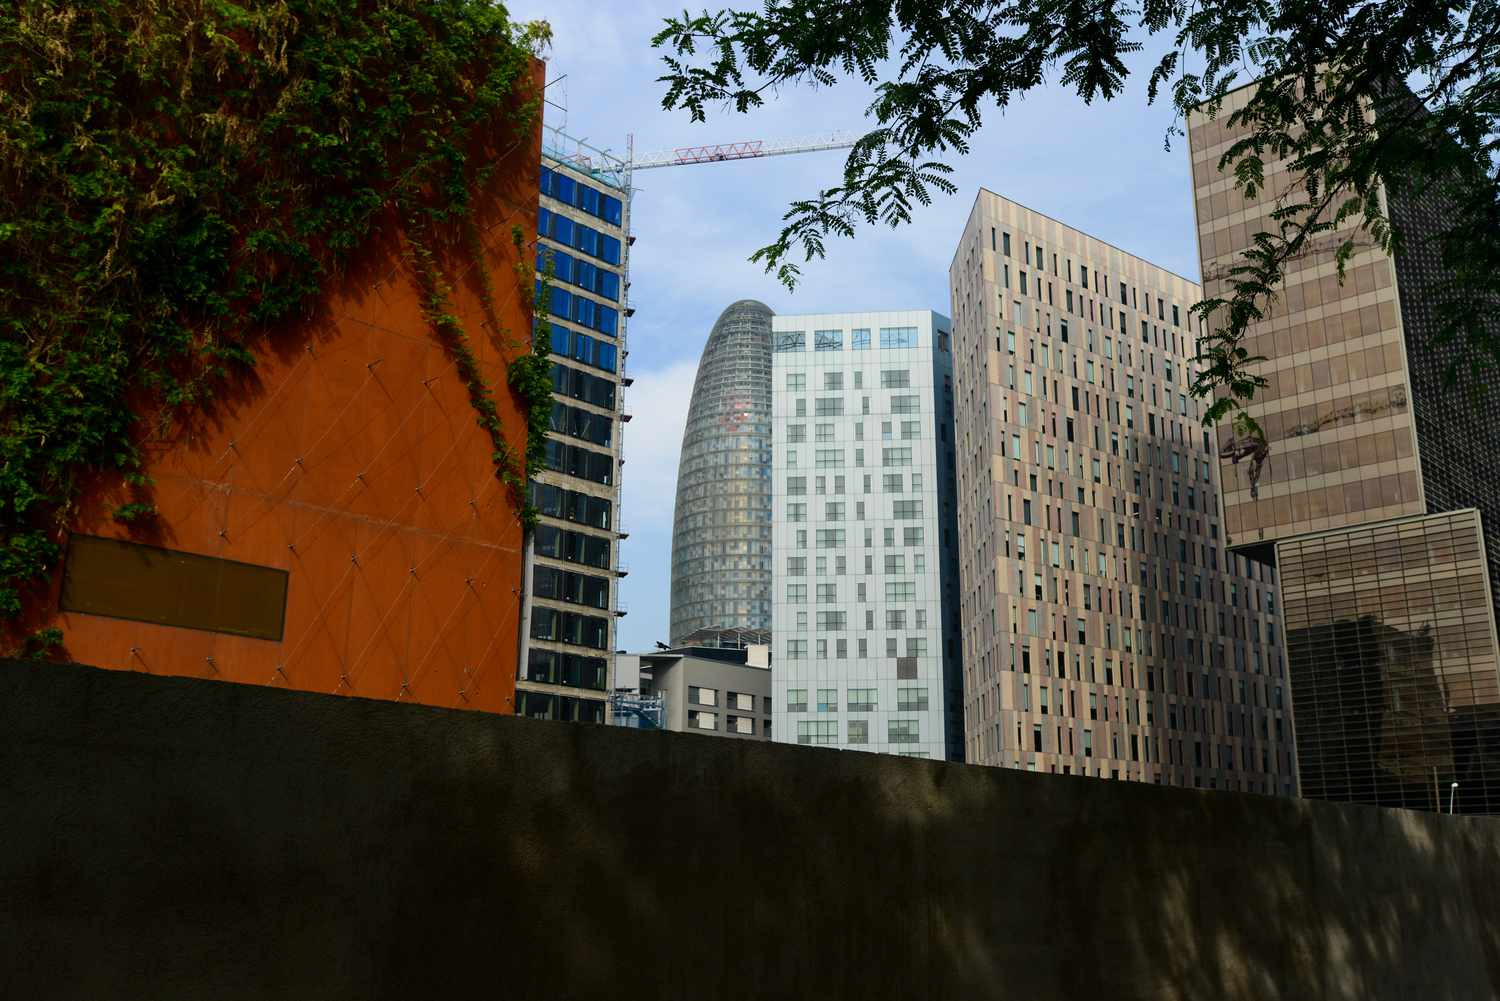 The financial district in Poblenou, Barcelona